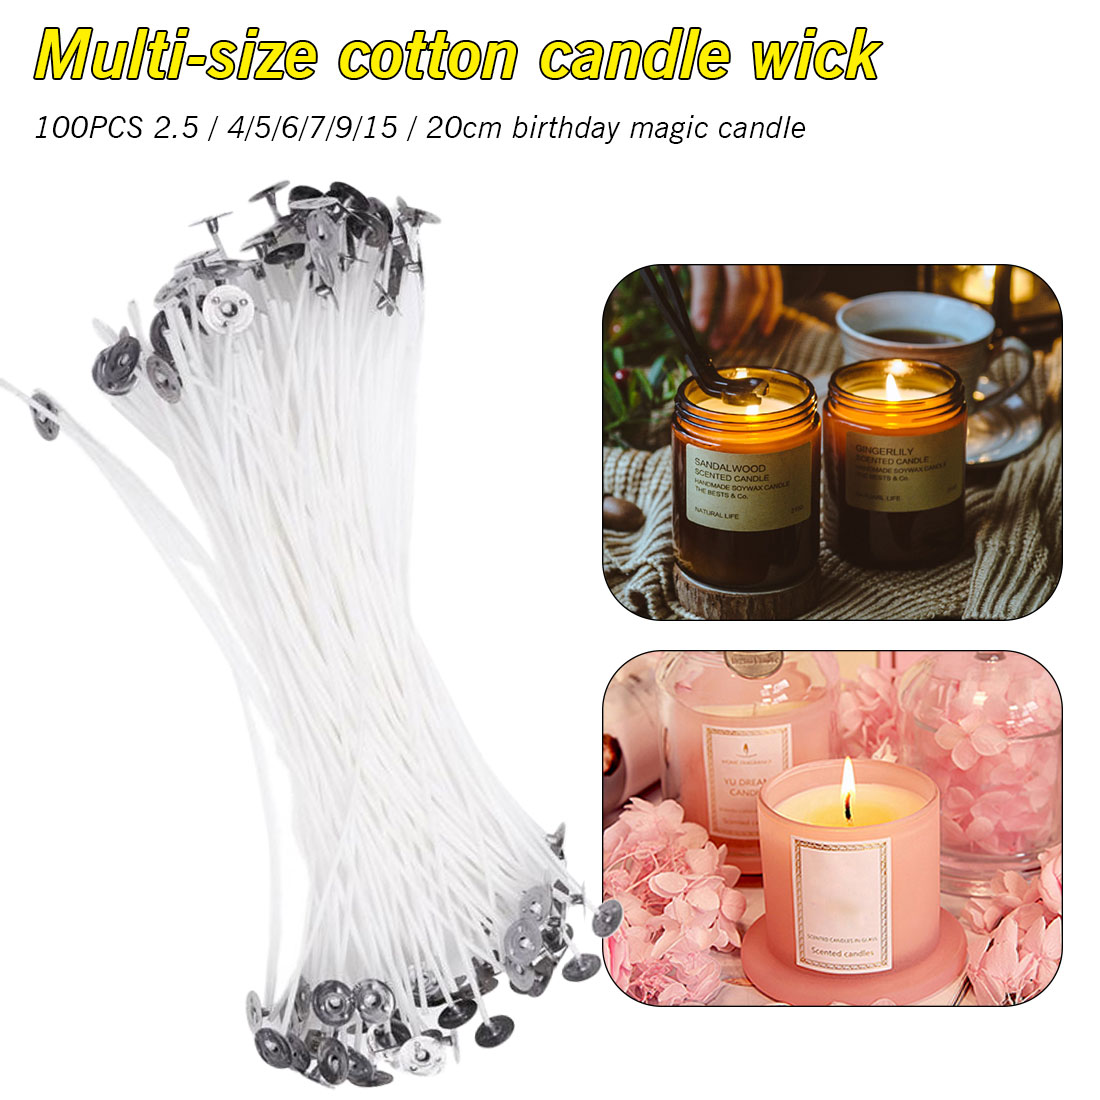 100pcs//Pack Candle Wicks Waxed Cotton Core DIY Candles Making Party Supplies